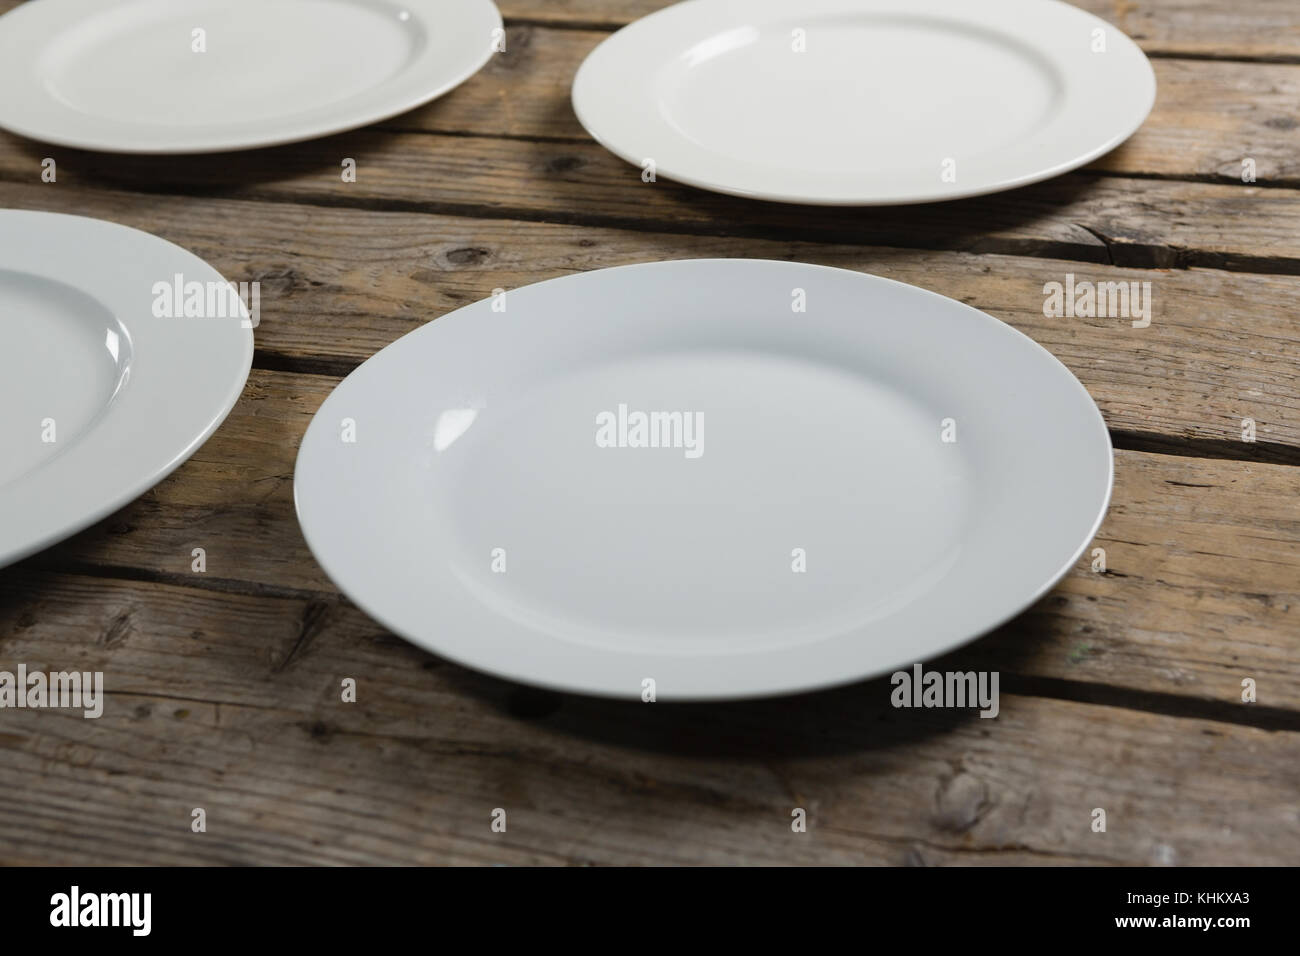 Empty white plates on wooden table - Stock Image